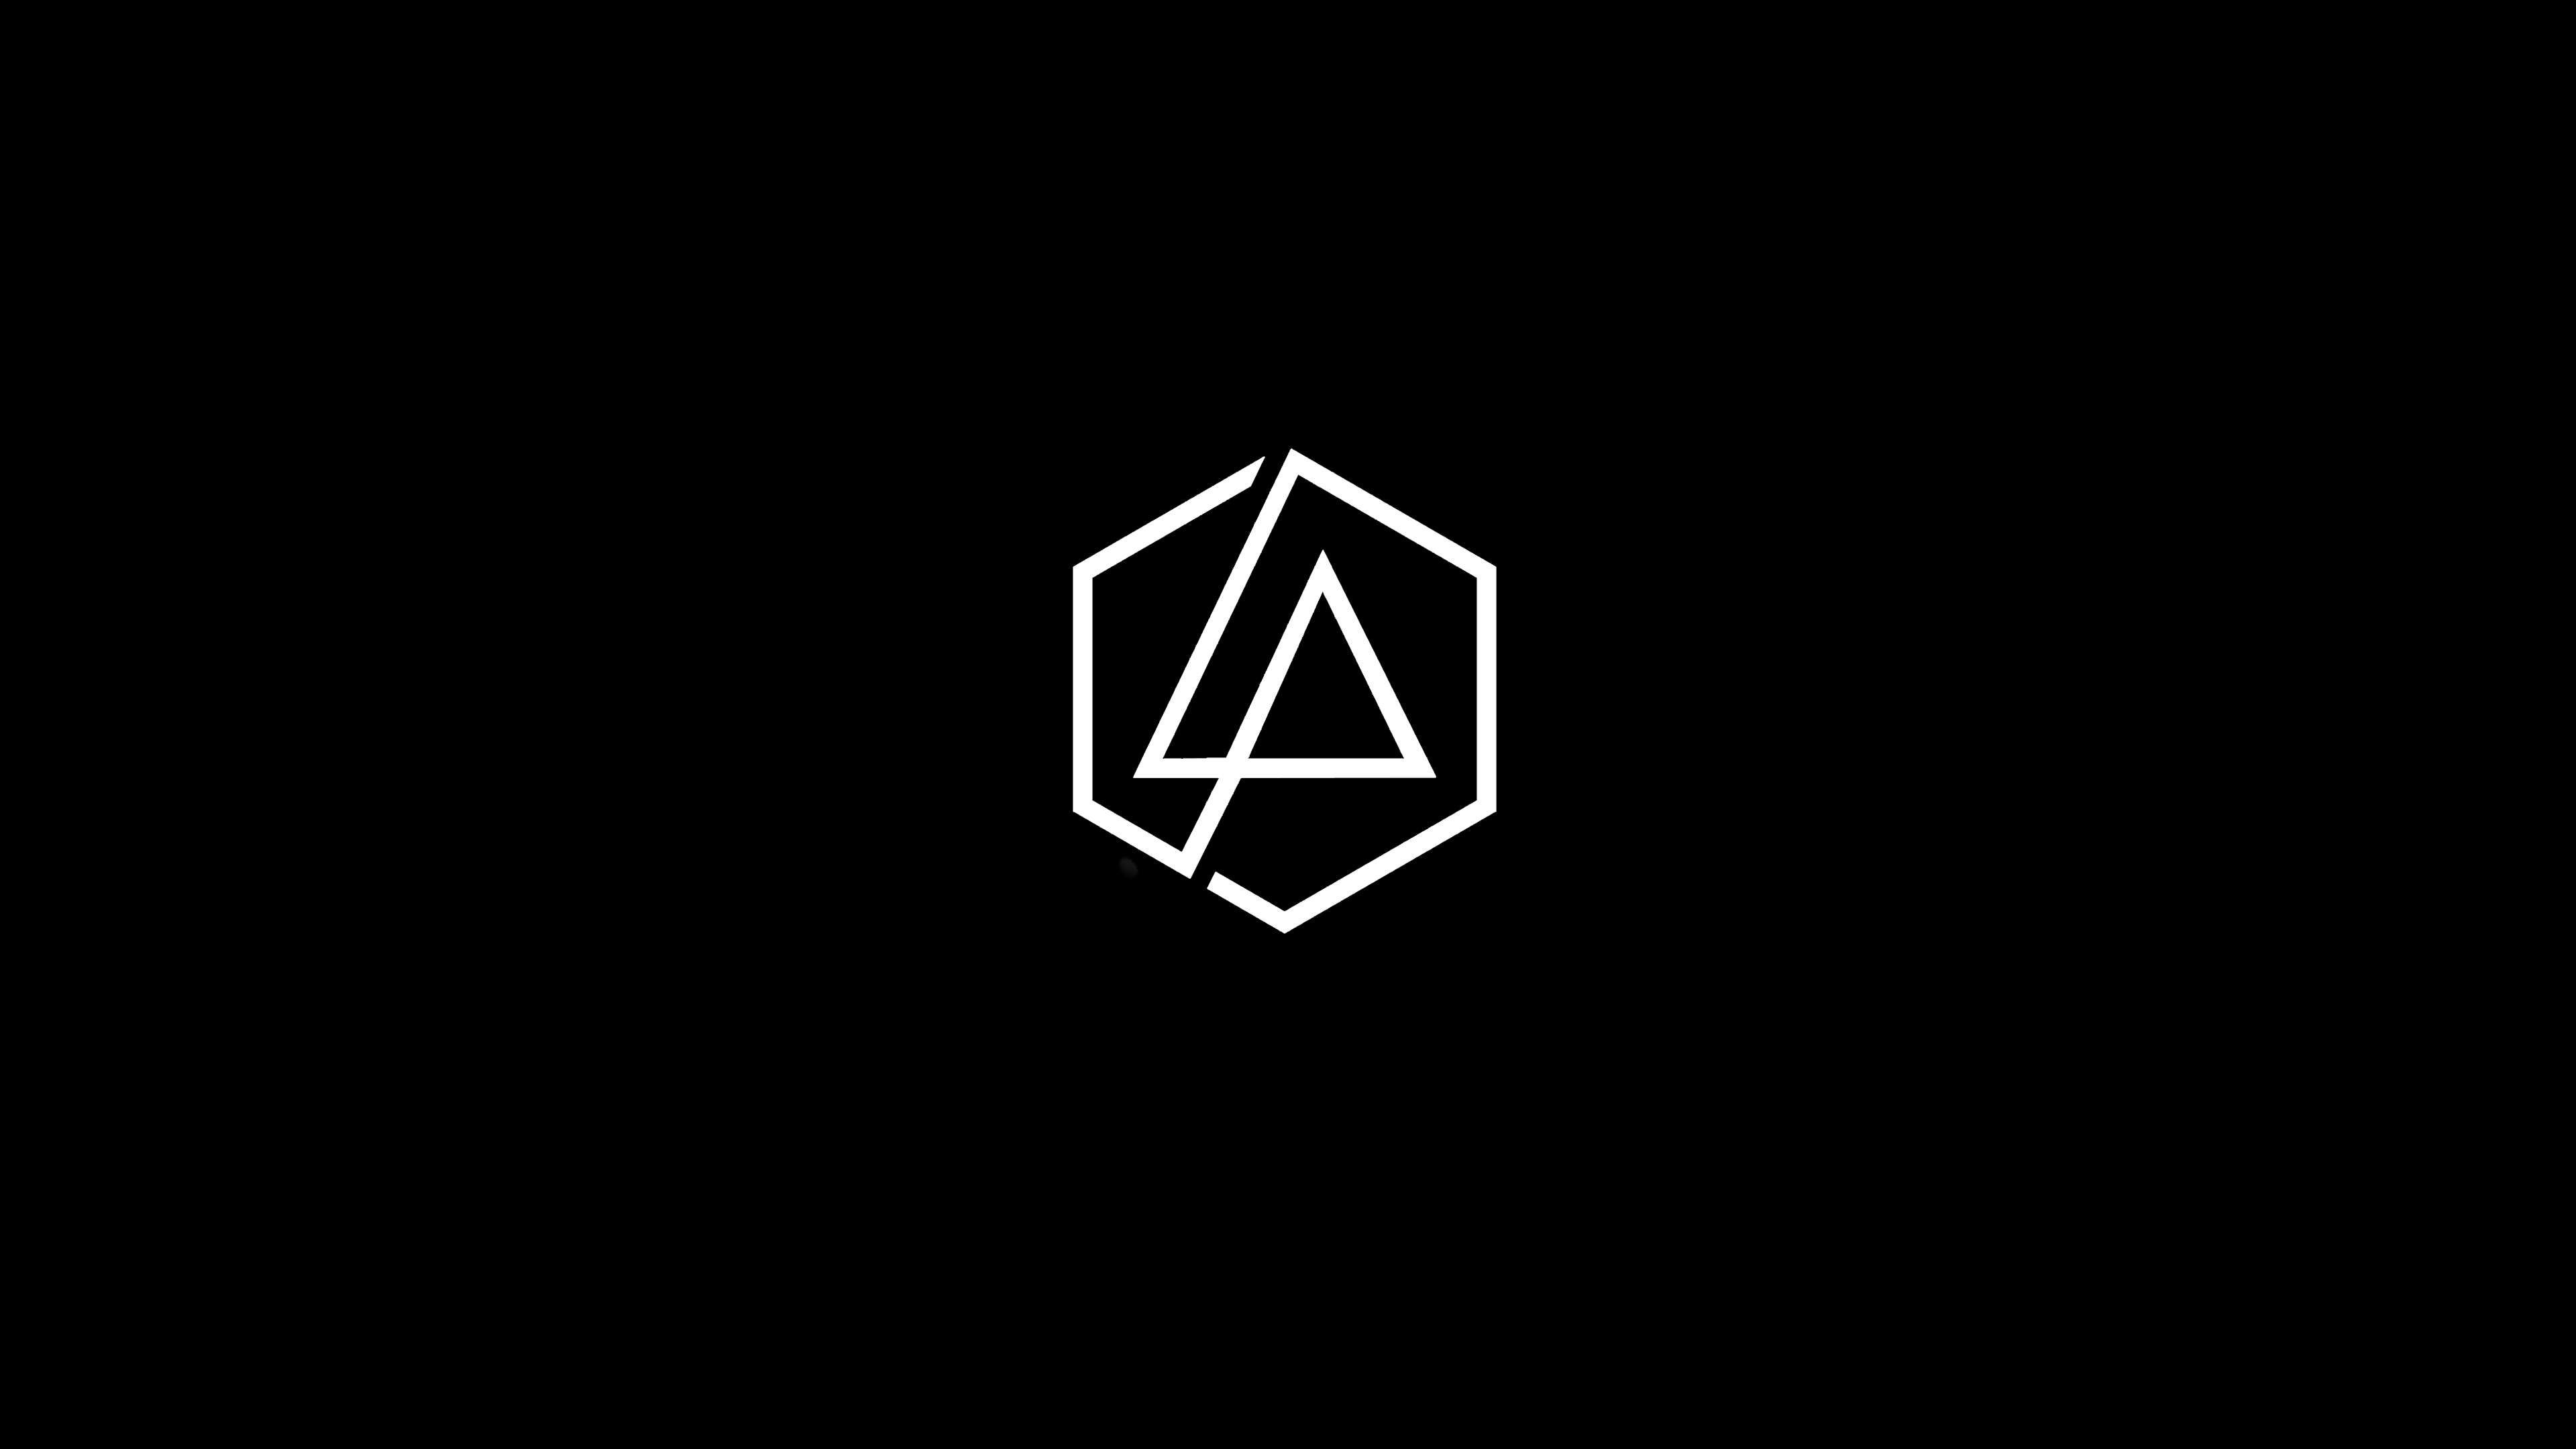 240x320 Linkin Park Logo 4k Nokia 230 Nokia 215 Samsung Xcover 550 Lg G350 Android Hd 4k Wallpapers Images Backgrounds Photos And Pictures